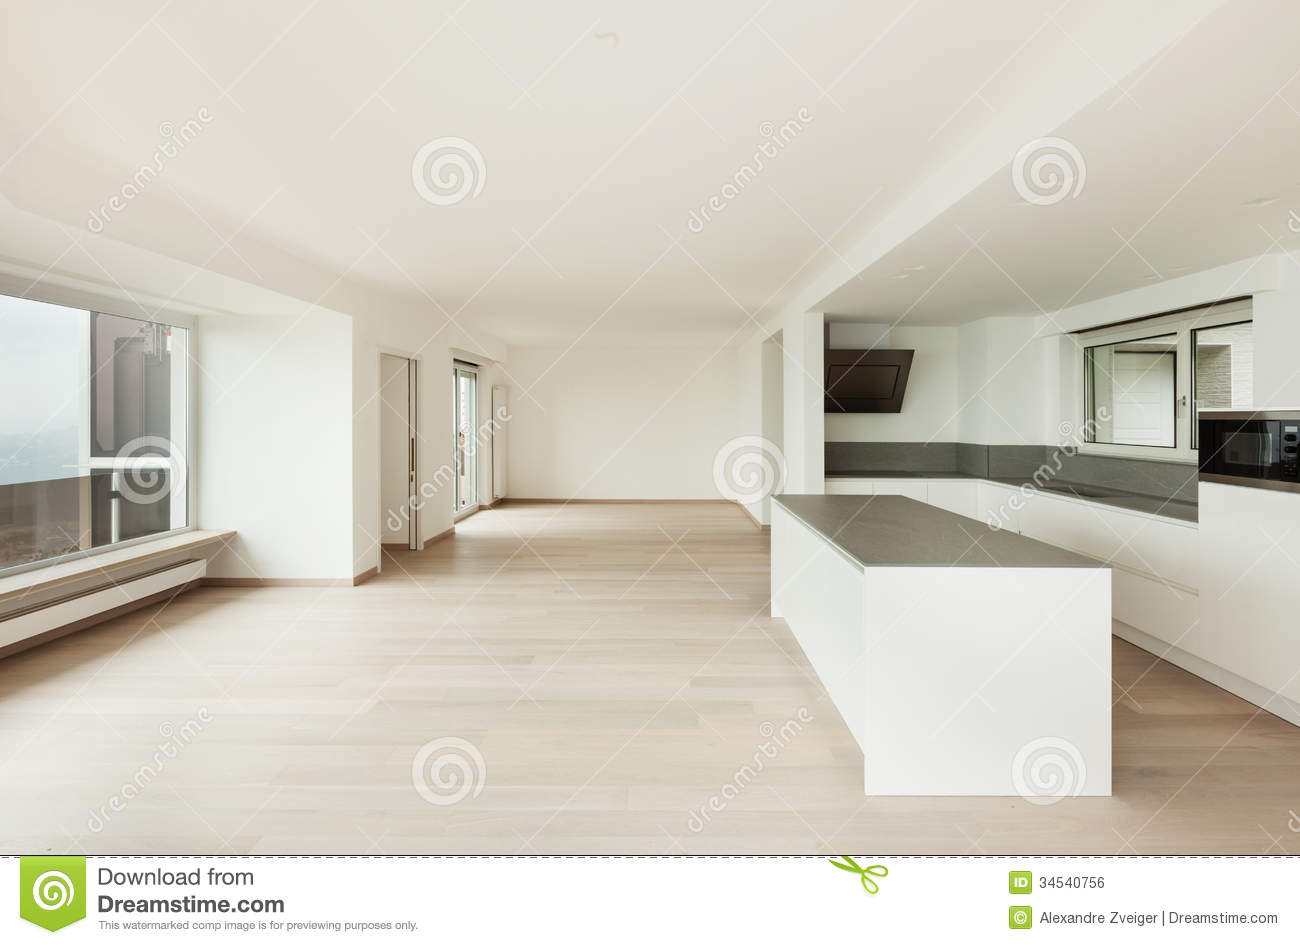 Interior Penthouse Totally Empty Royalty Free Stock Image  Image 34540756